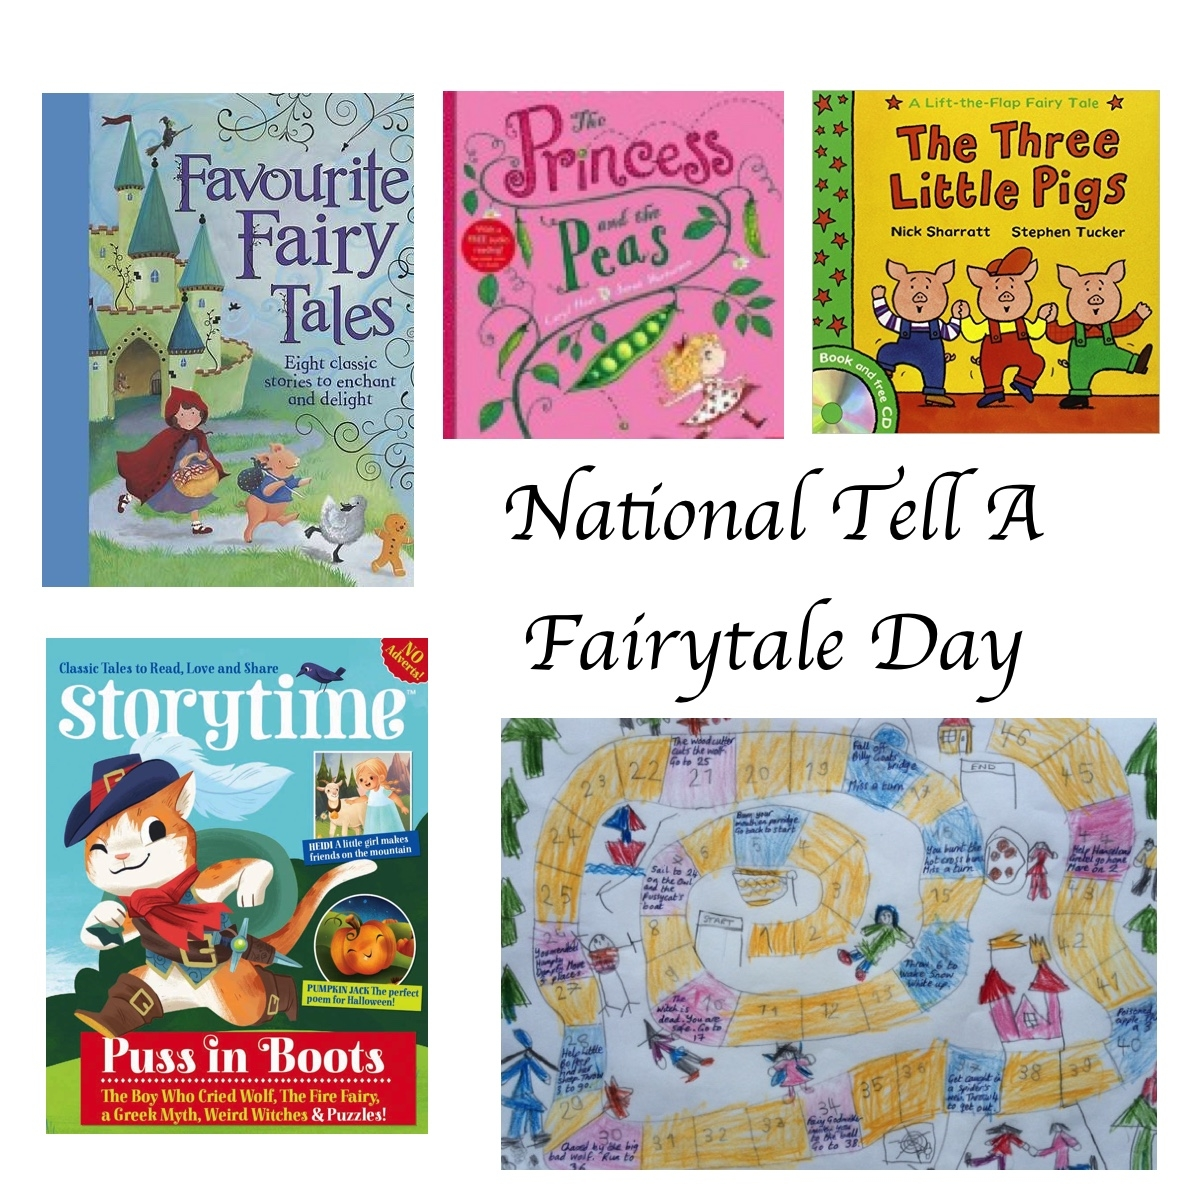 Which Stories Will You Be Telling On National Tell A Fairytale Day